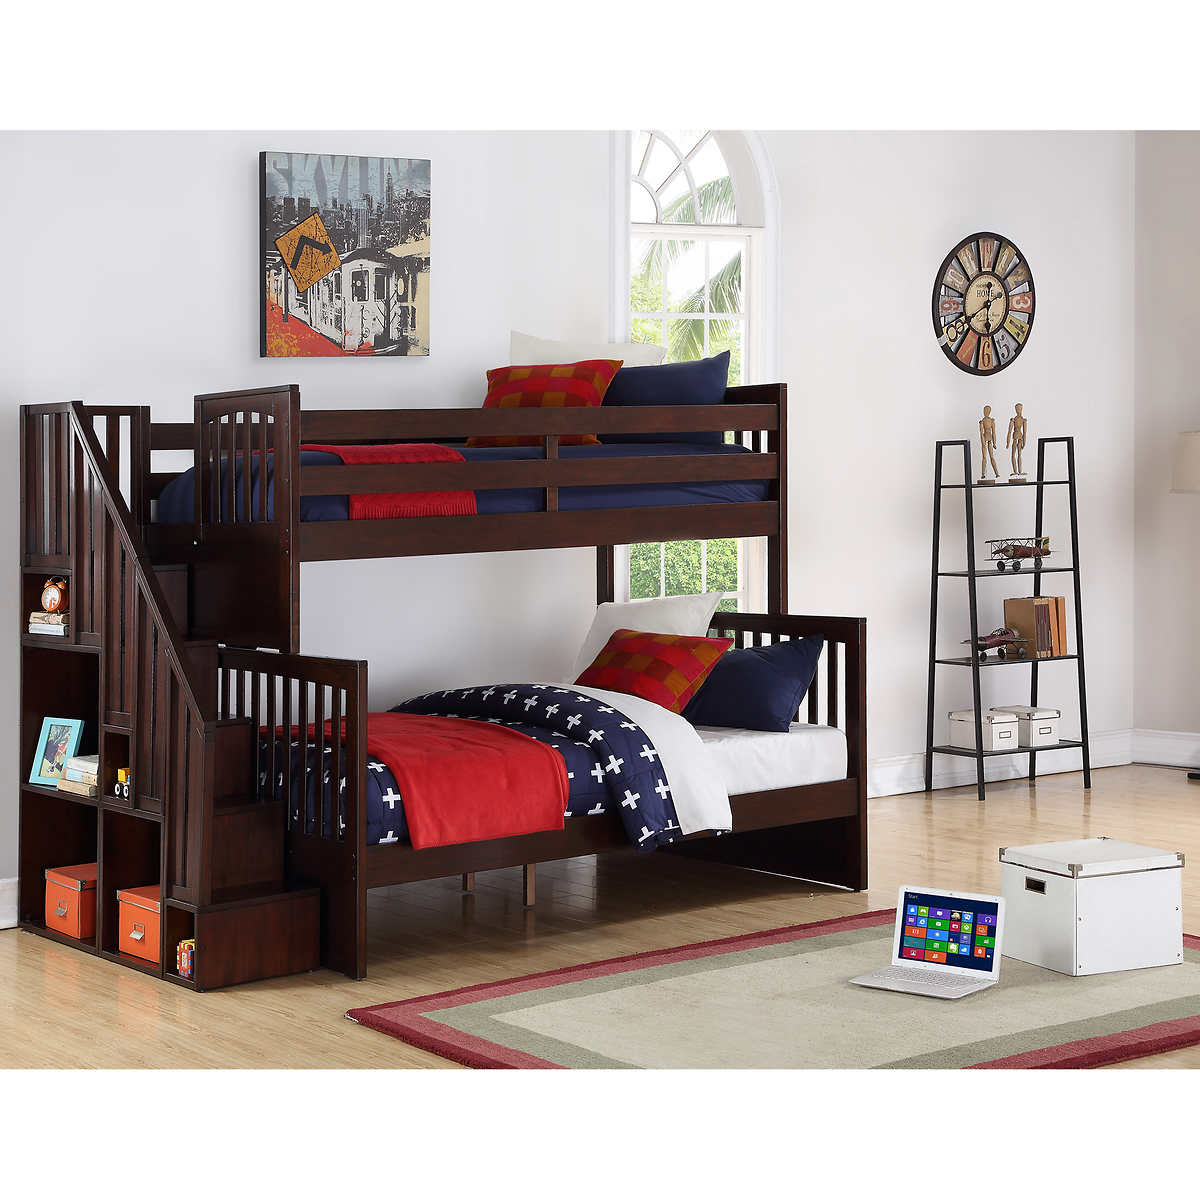 Noah Twin Over Double Bunk Bed With Universal Staircase